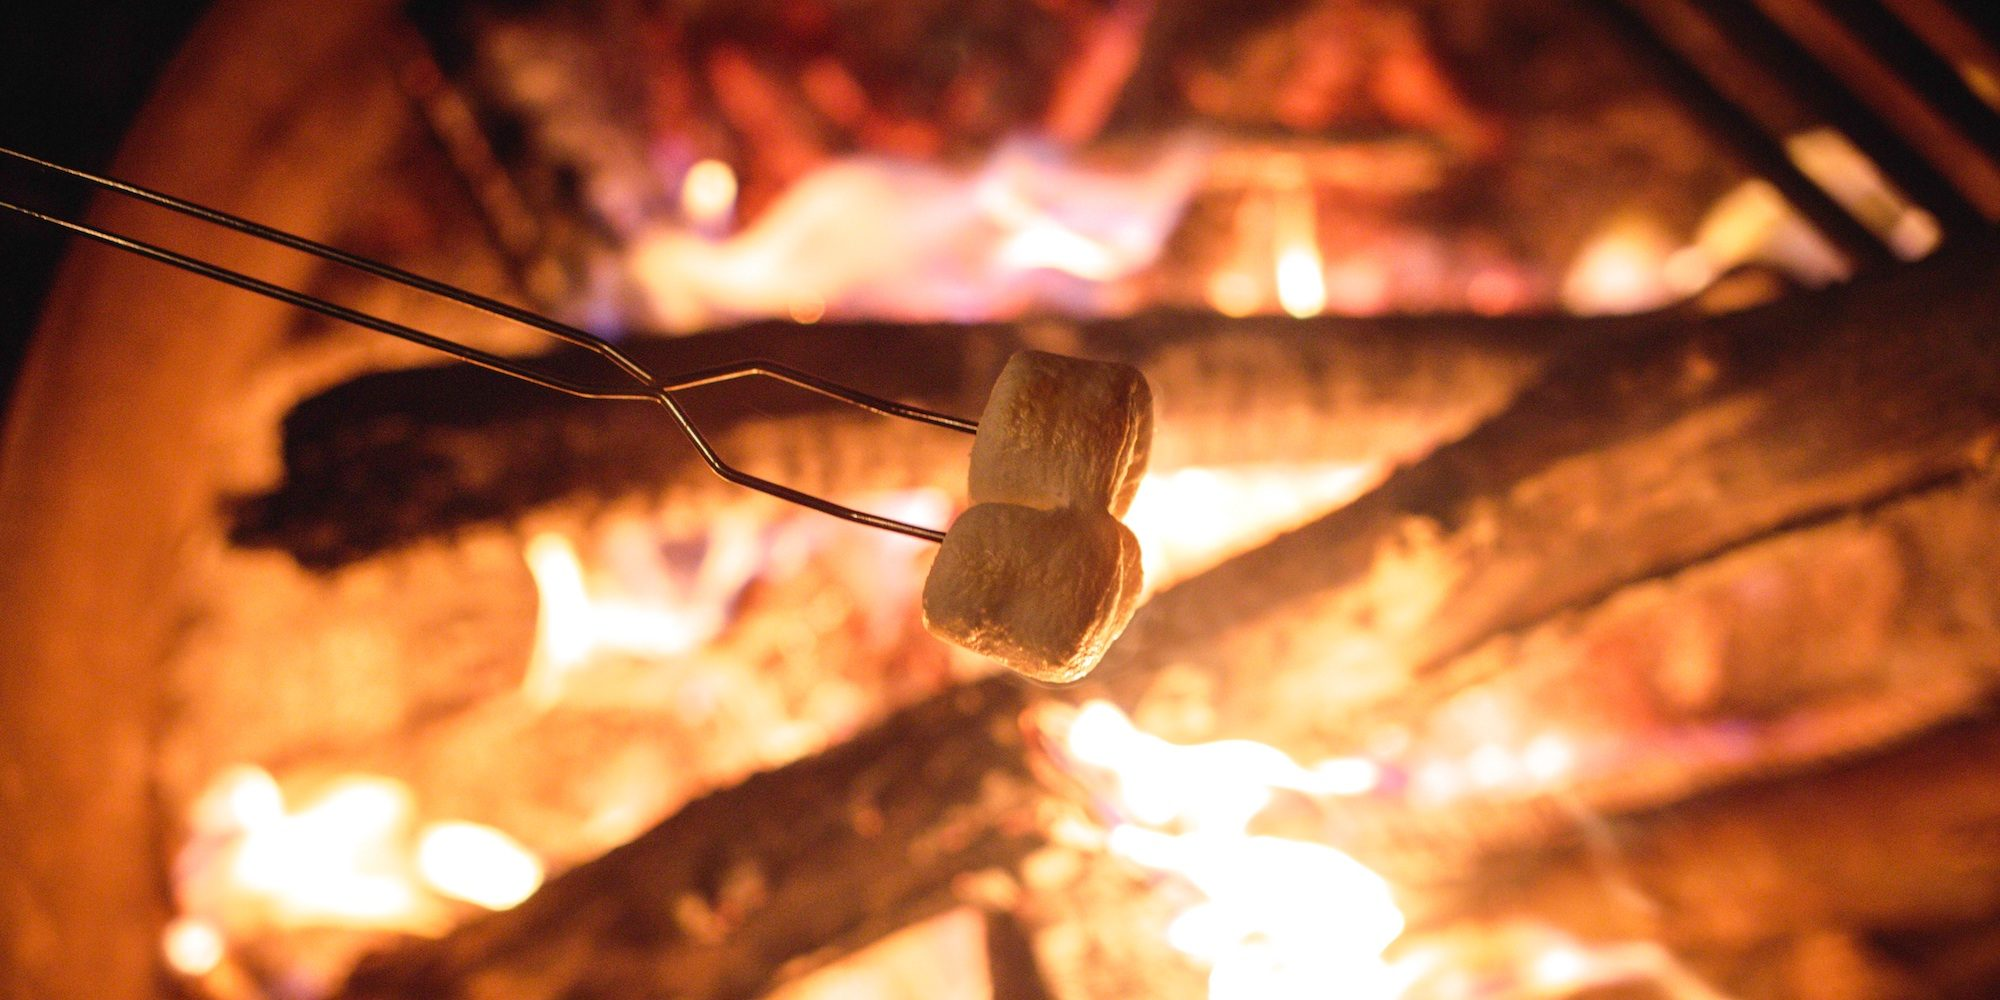 Two marshmallows on hanger being roasted over a campfire